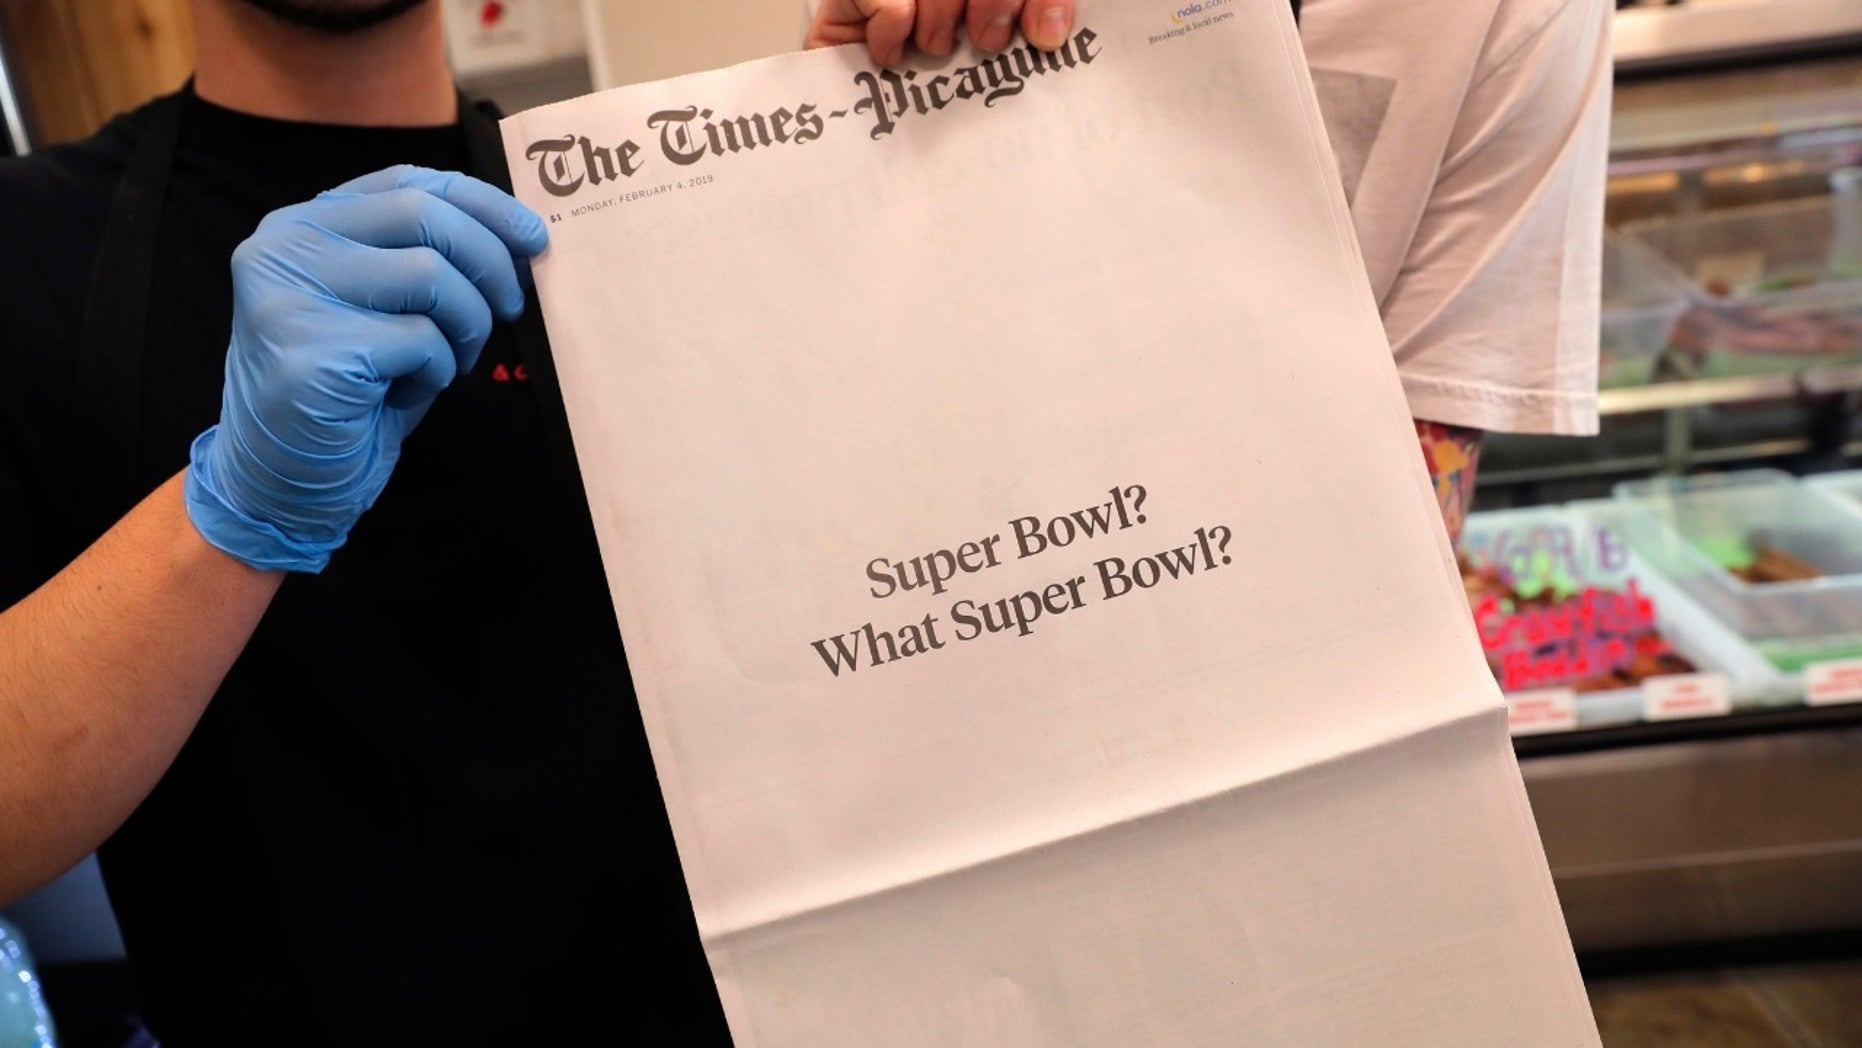 "The New Orleans Times-Picayune hilariously trolled the Super Bowl after Monday's front page stated, ""Super Bowl? What Super Bowl?"""